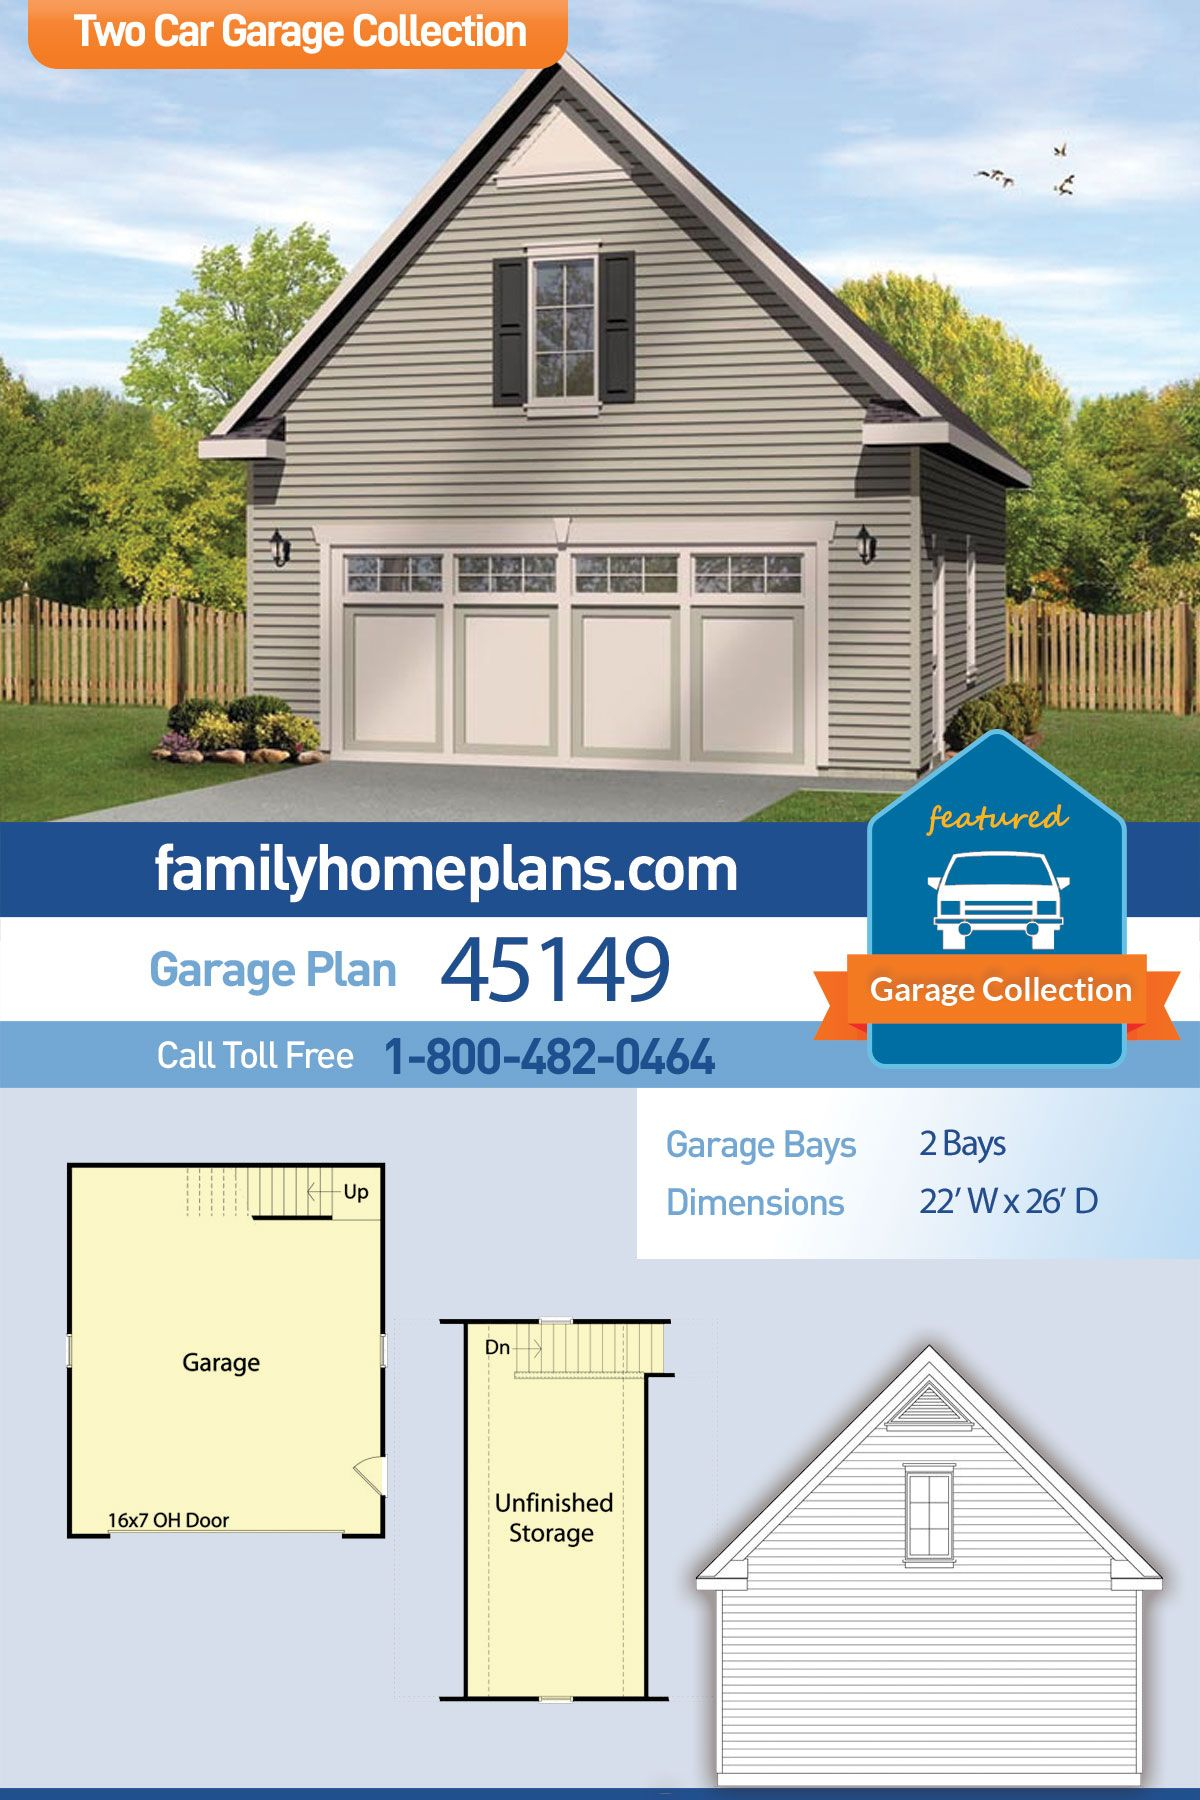 2 Car Garage Plan Number 45149 Garage Plan Garage Exterior Garage Building Plans